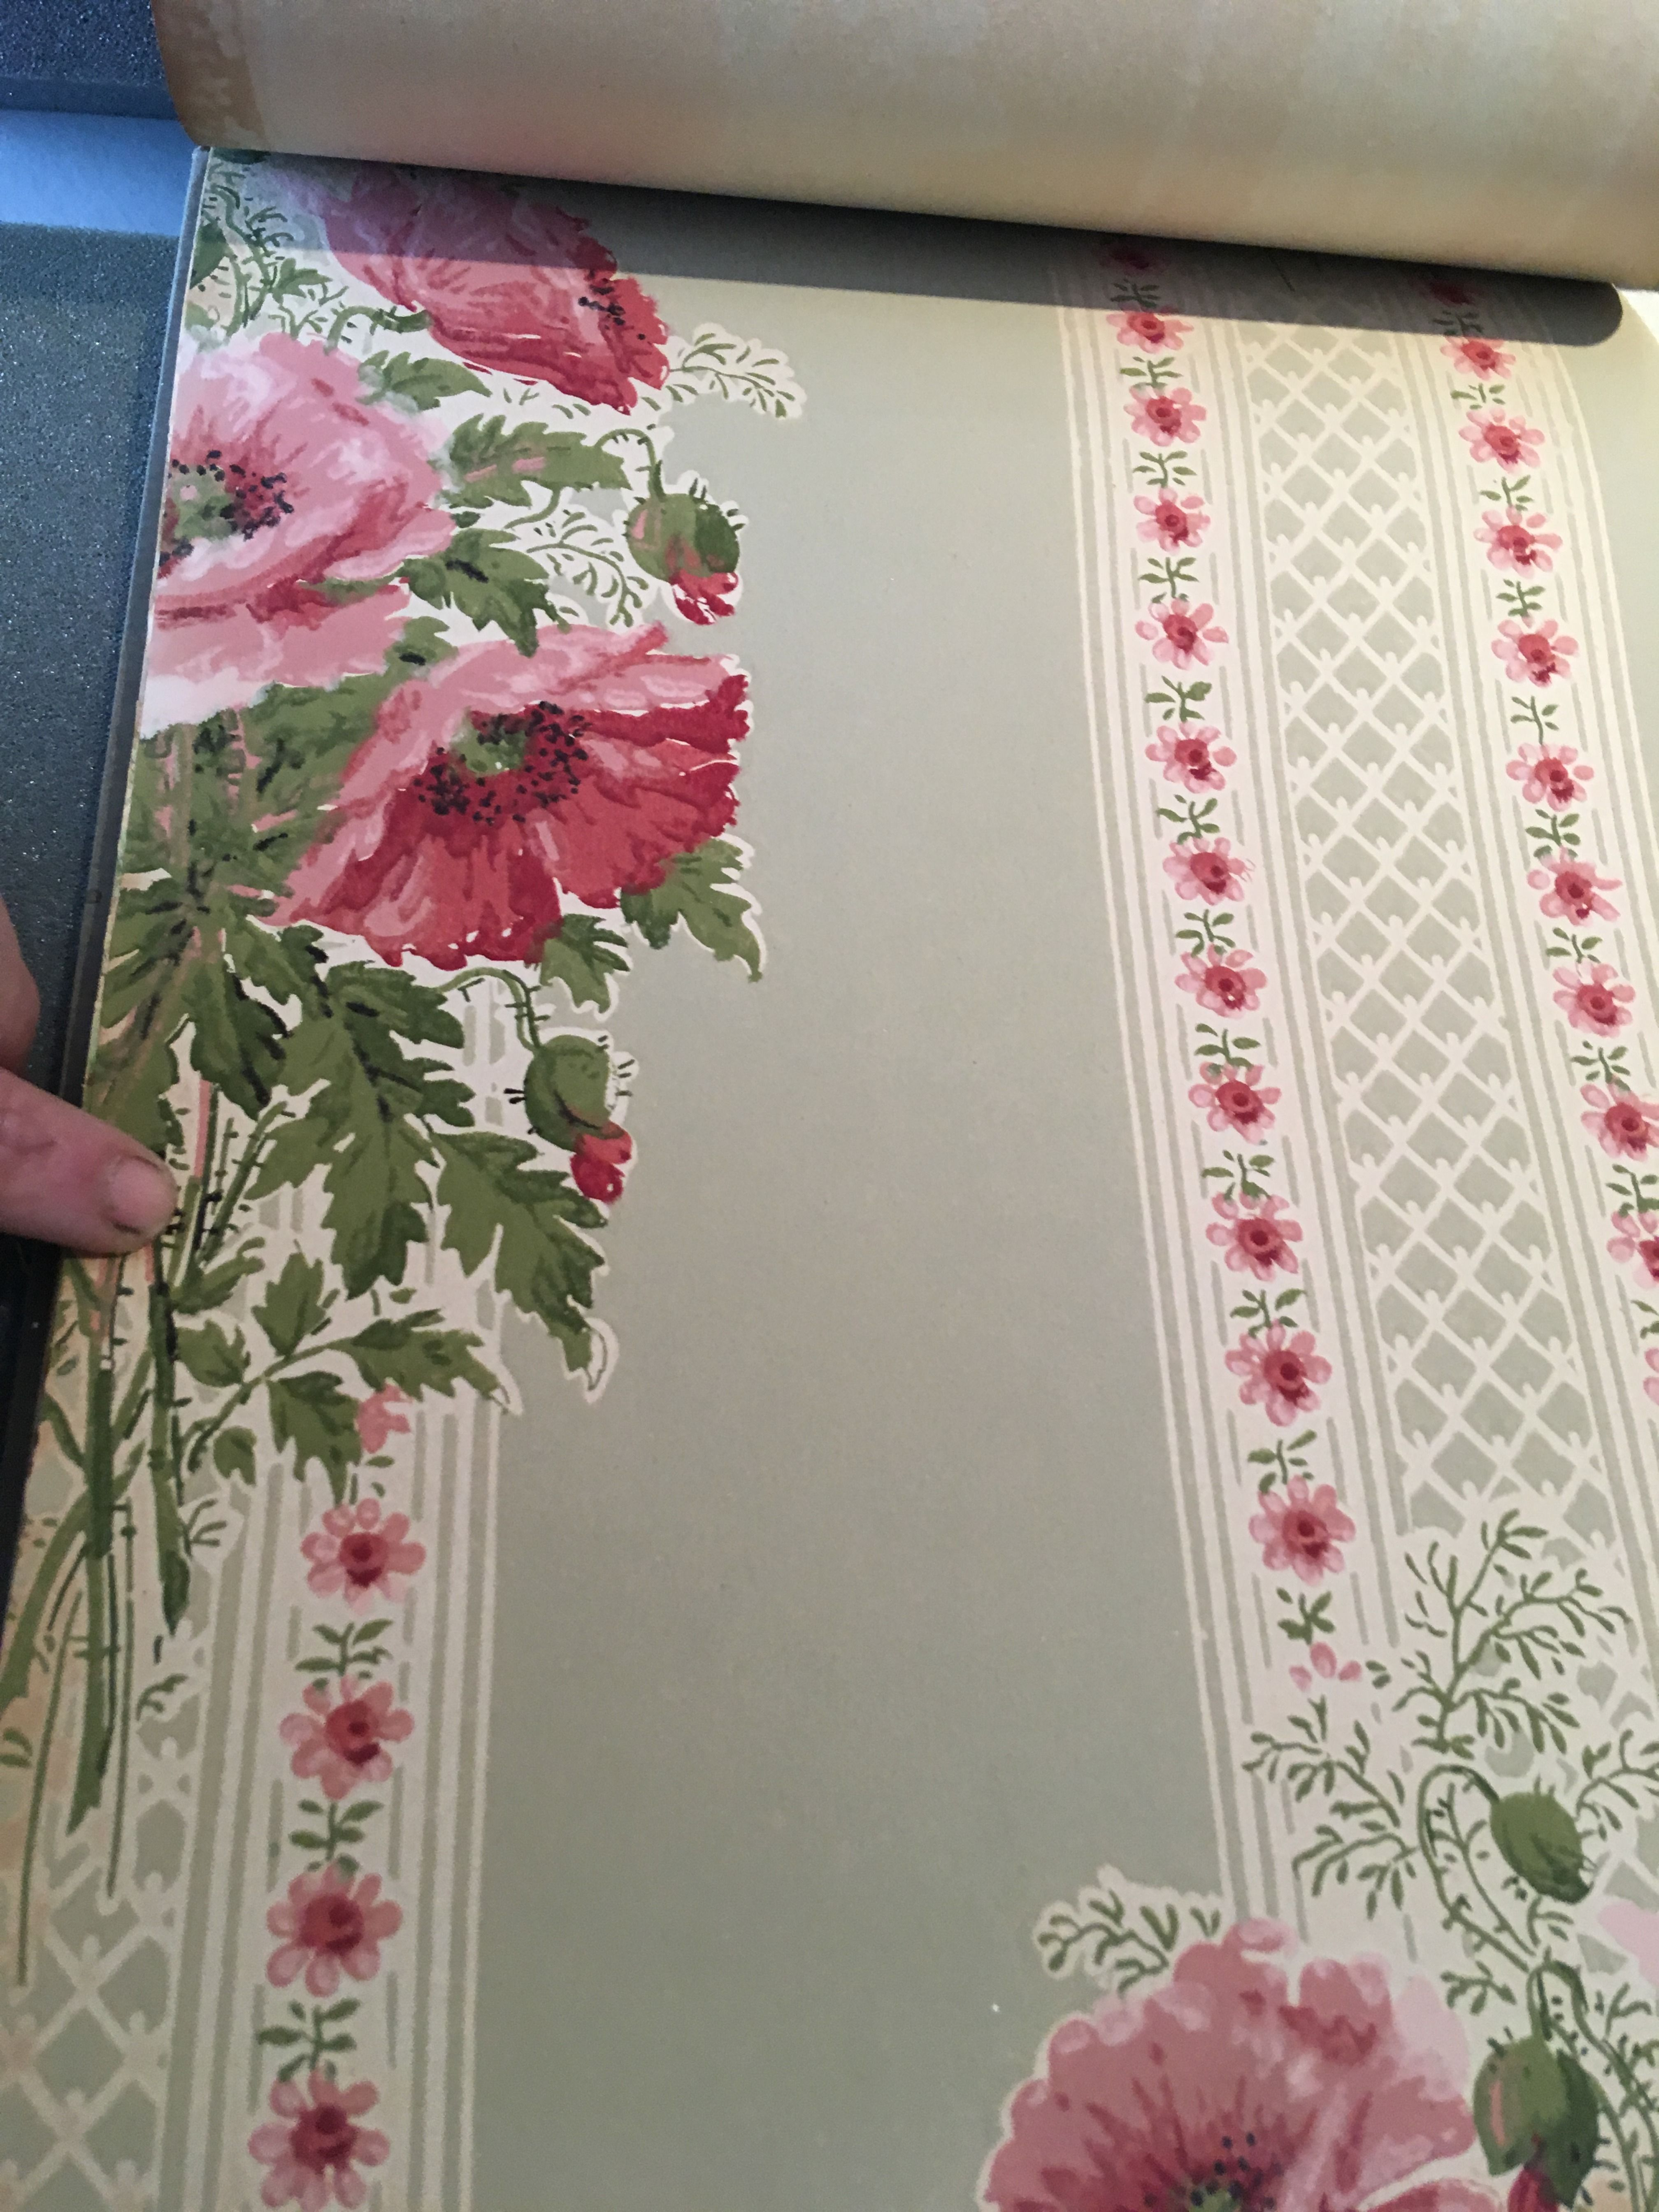 1914 antique Edwardian wallpaper with poppy floral design